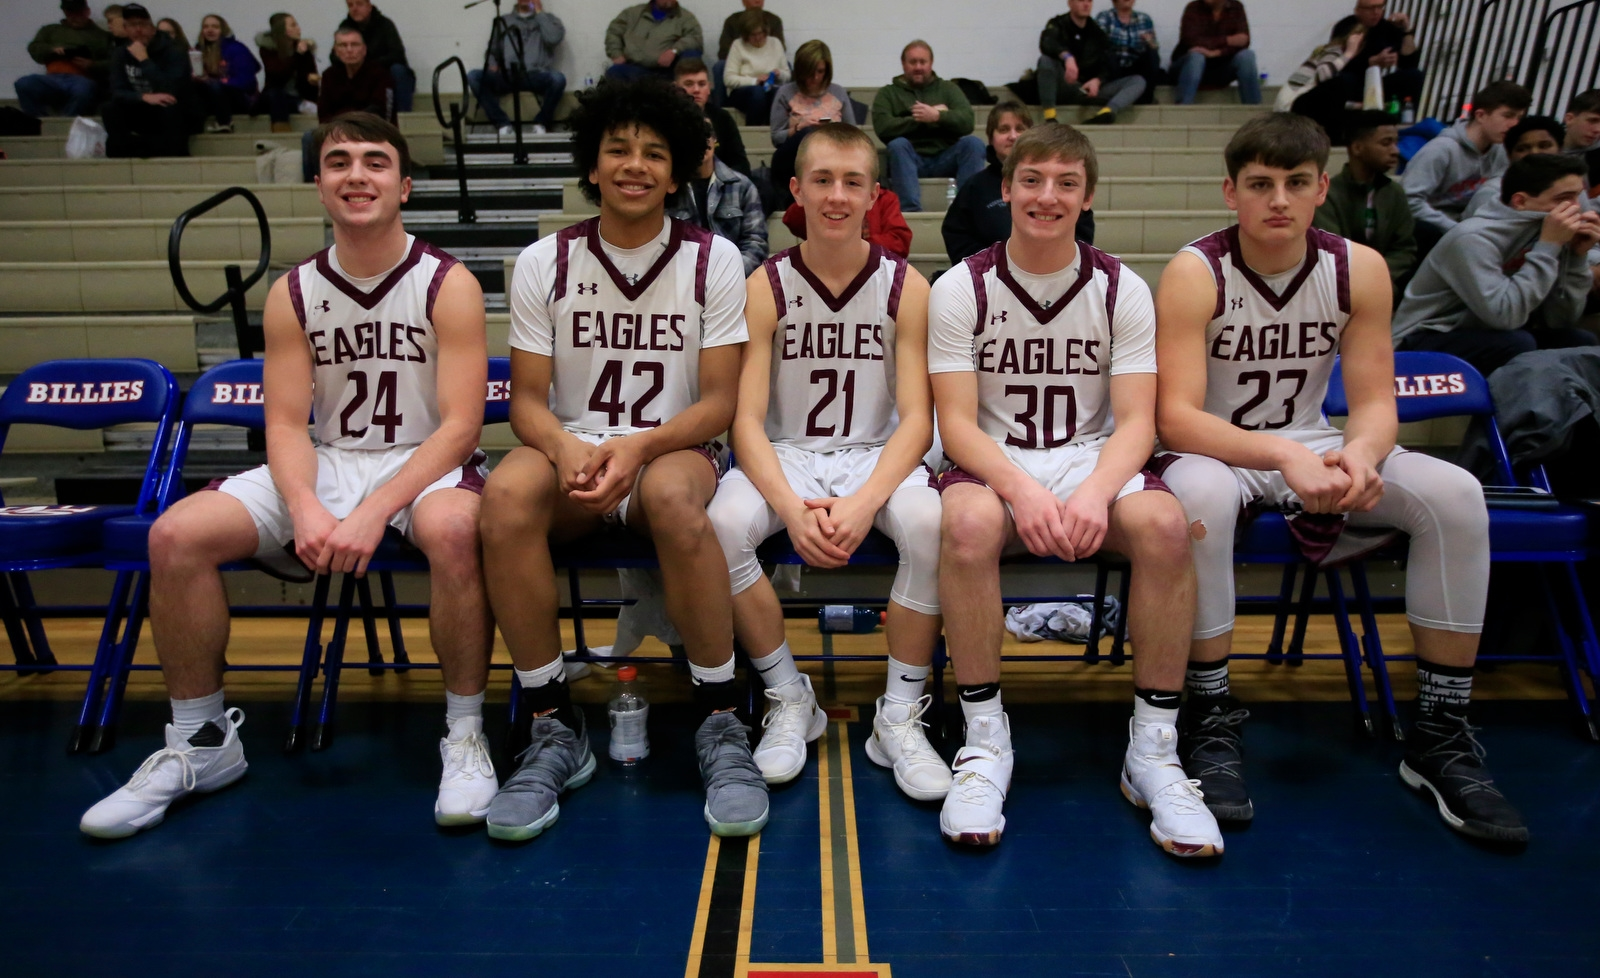 Ellicottville starters prior to playing Newfane in the Centercourt Classic hoops showcase at Williamsville South on Saturday, Feb. 3, 2018.